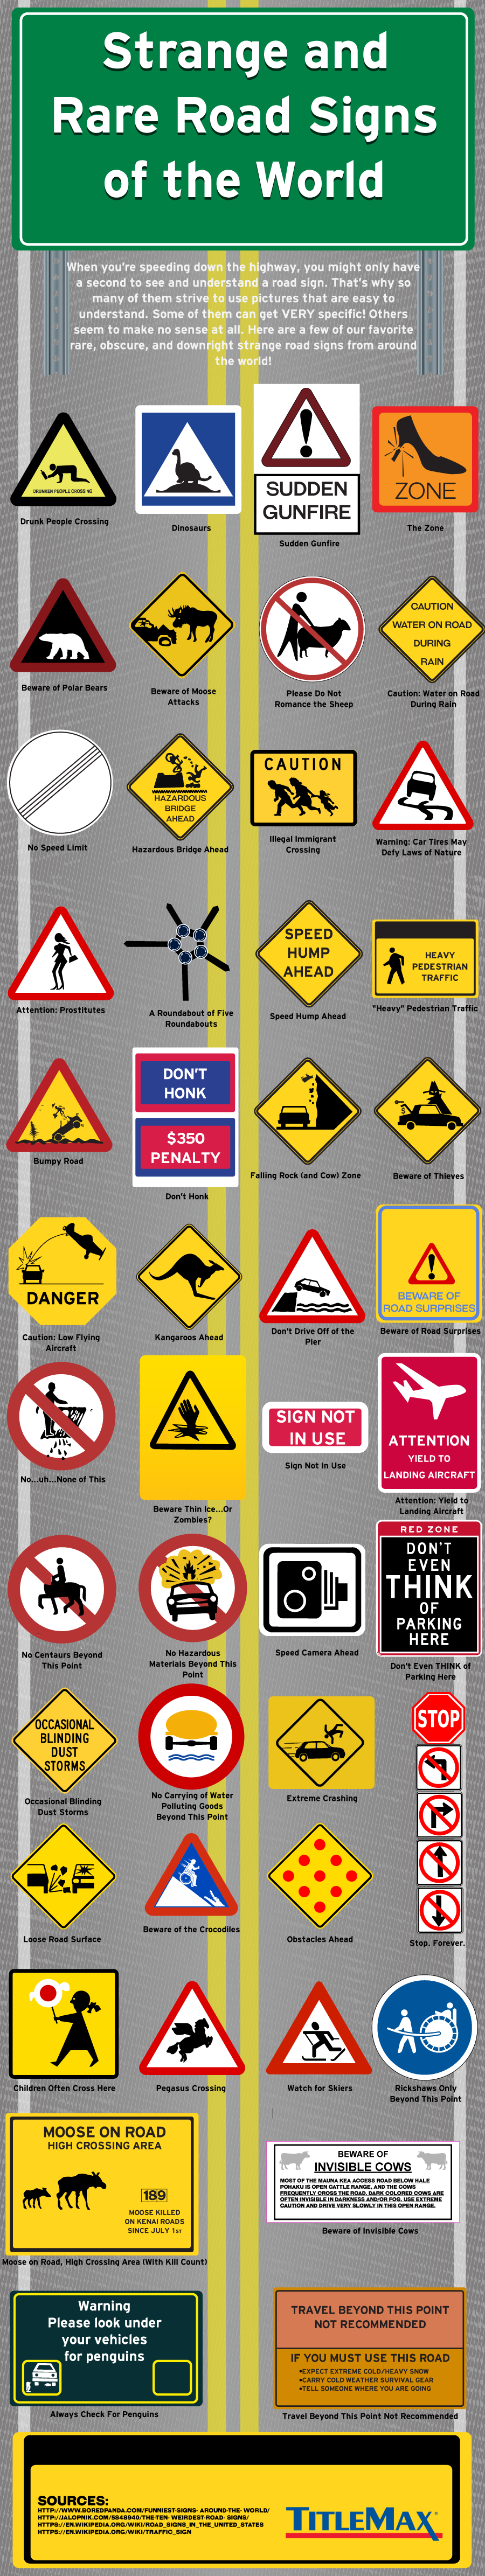 Strange and Rare Road Signs of the World #Infographic